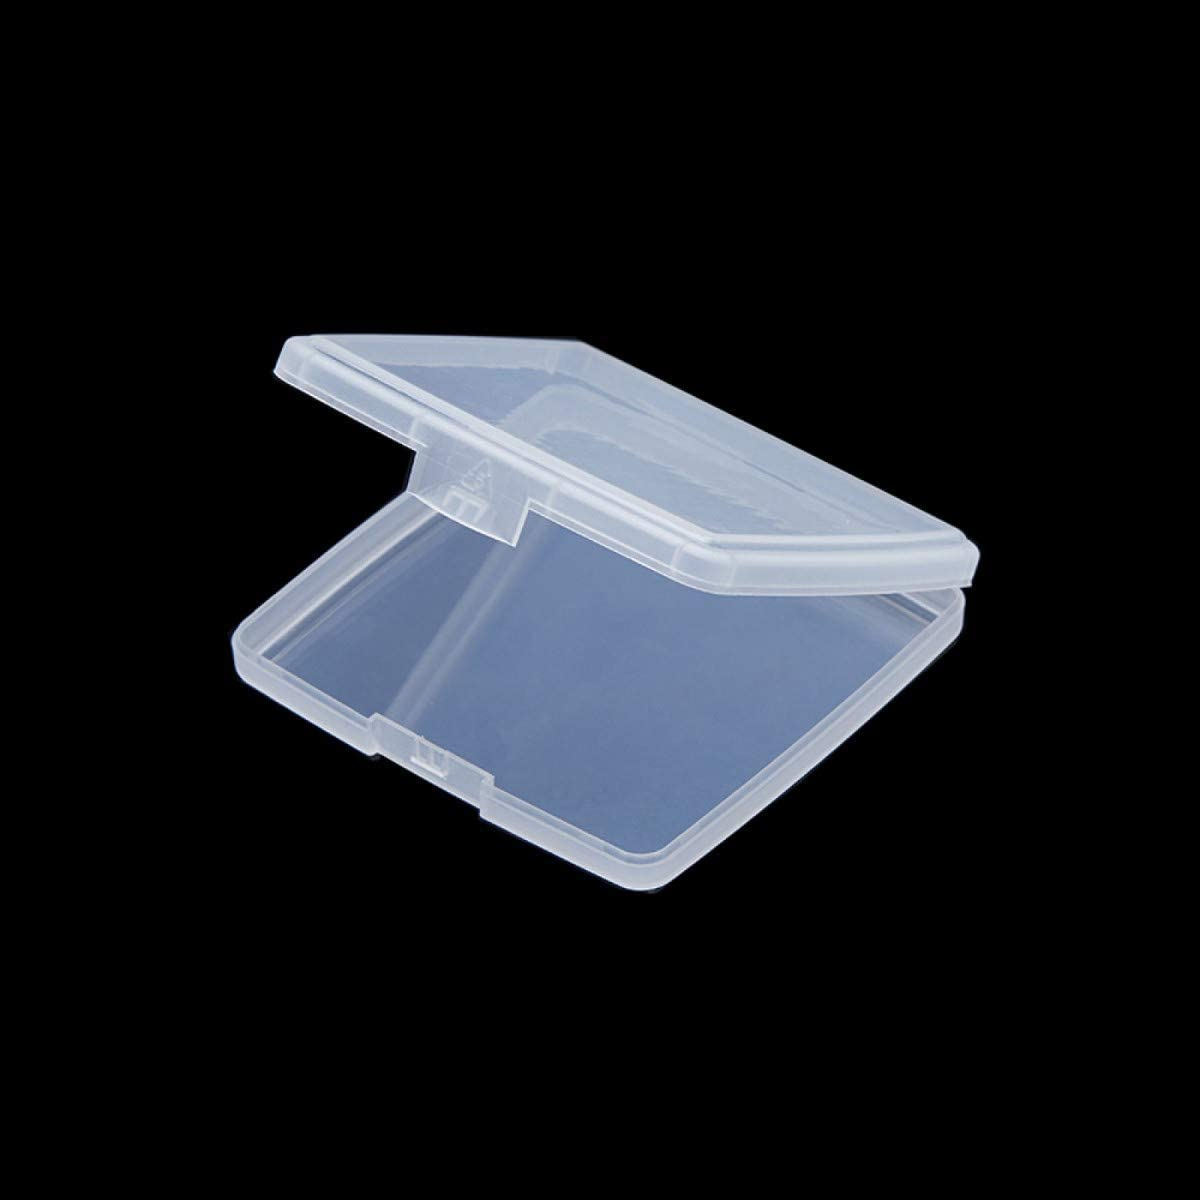 10x Mini Clear Plastic Small Storage Box Jewelry Beads Case Container Holder